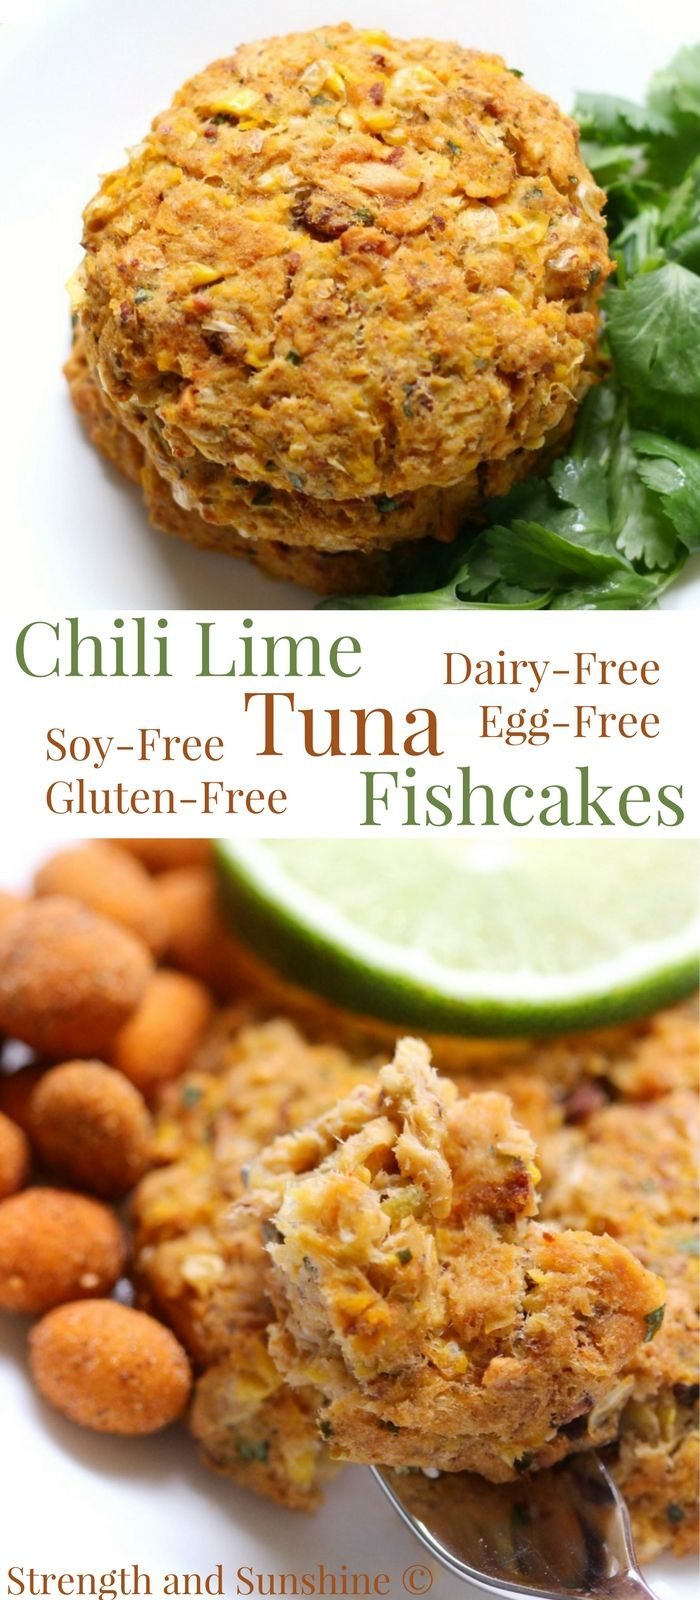 Chili Lime Tuna Fishcakes (Gluten-Free) | Strength and Sunshine @RebeccaGF666 Elevated fishcakes with a zesty twist! Chili Lime Tuna Fishcakes that are gluten-free, egg-free, dairy-free, & soy-free, without the oil and baked in the oven. With a secret nutty ingredient for a super flavor-packed & healthy recipe your family will love for dinner or lunch! #fishcakes #tuna #fish #glutenfree #eggfree #dairyfree